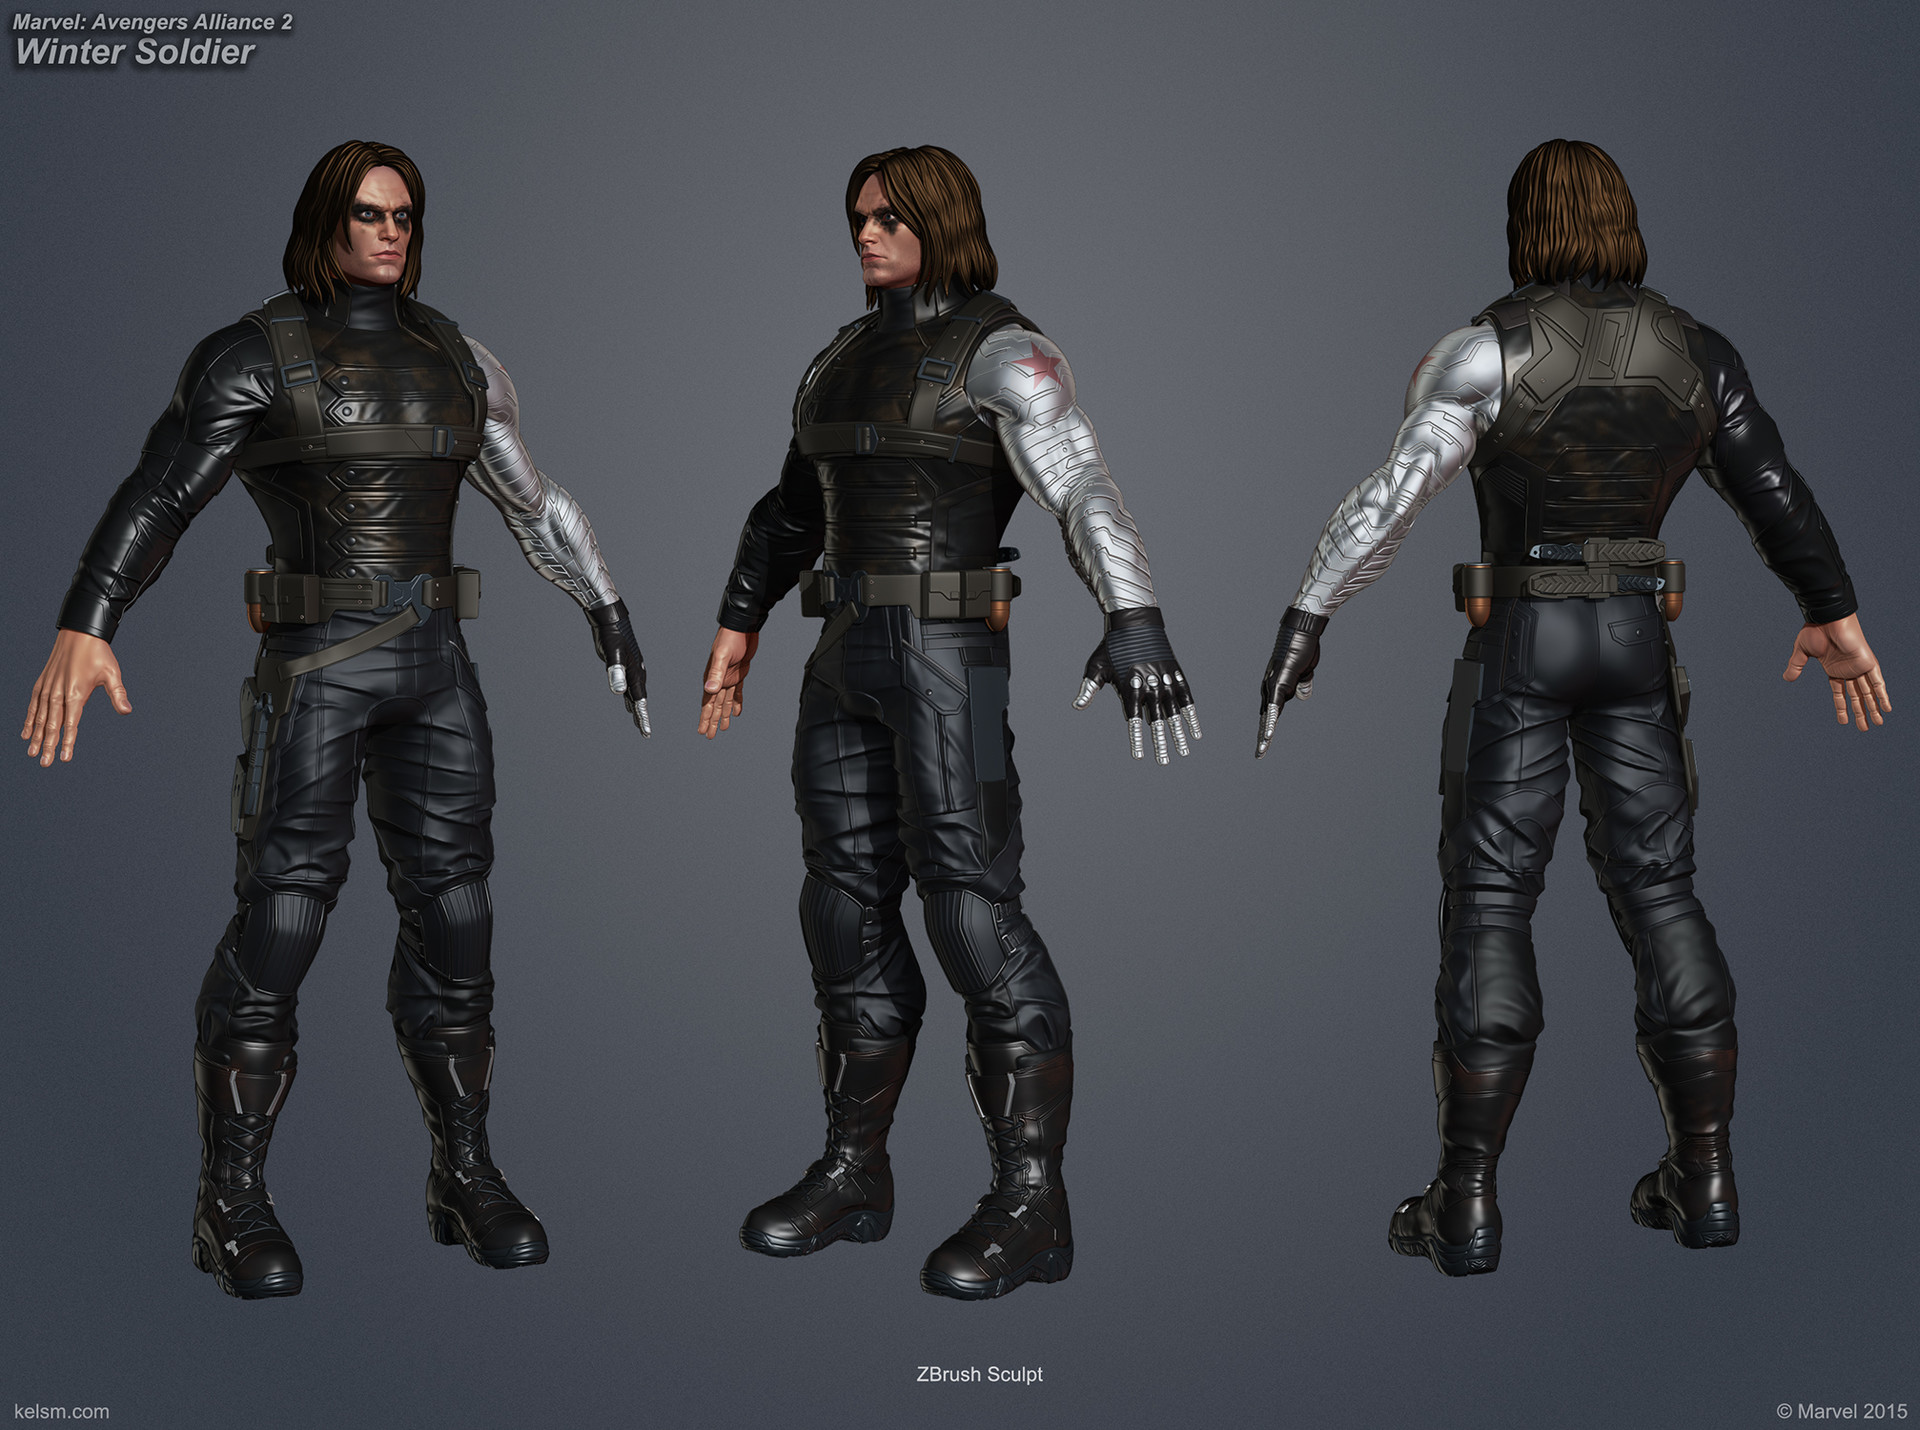 Kelsey martin winter soldier01 presentation